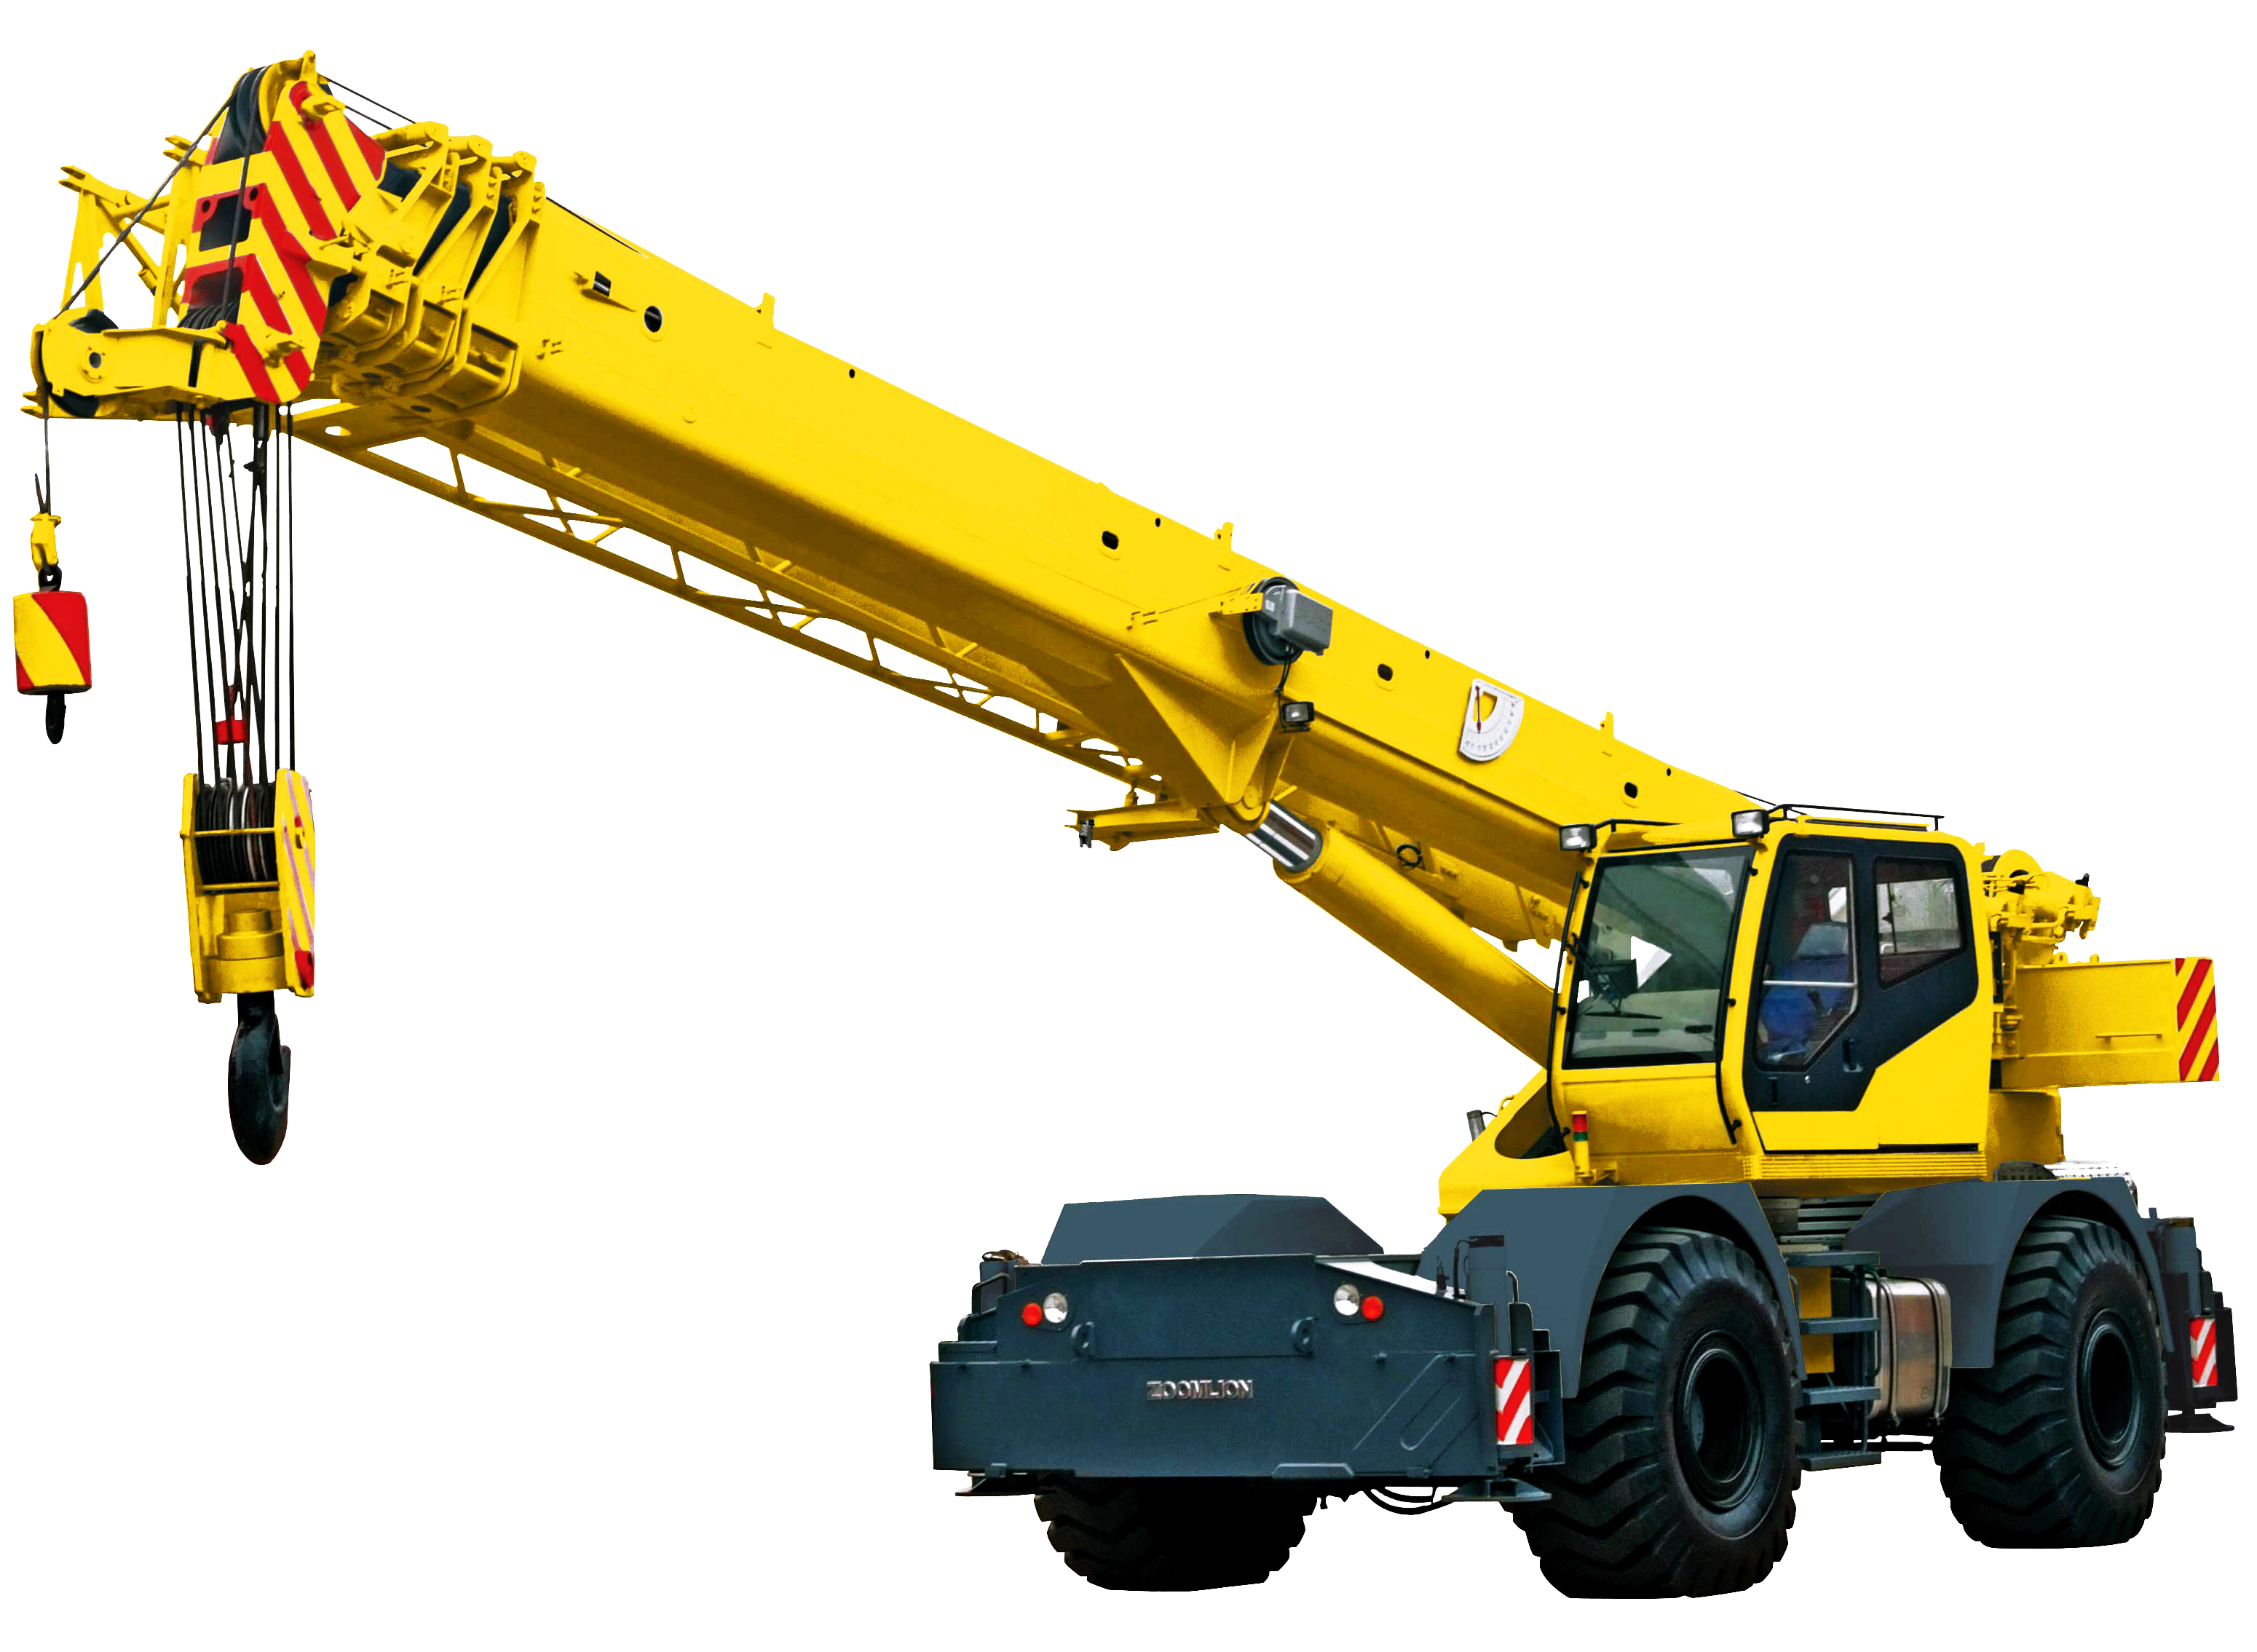 Telescopic Crawlers